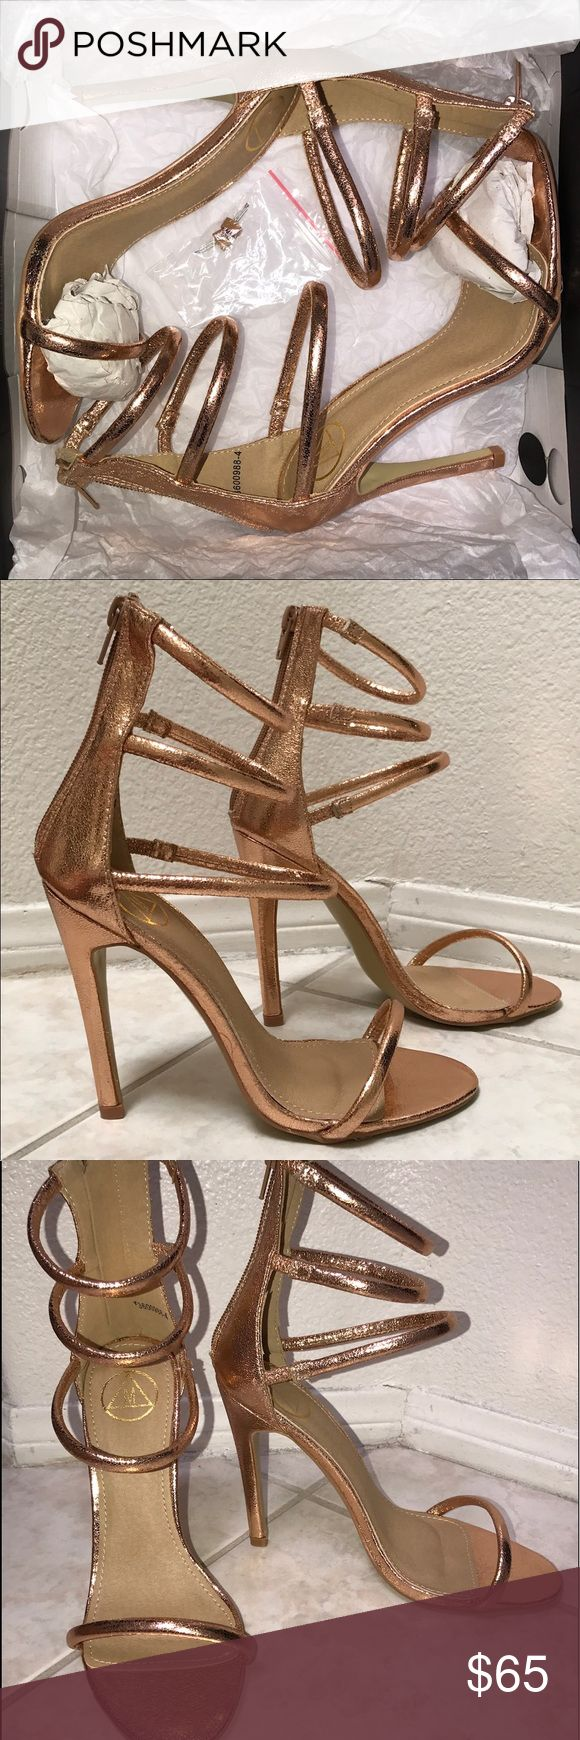 Missguided Rose Gold Giuseppe Heels Sandals 6 6.5 BRAND NEW - SHIPPED WITH BOX!                       These strappy sandals are so sexy & comfortable! AND they look just like Giuseppe Zanotti - Harmony (sold out everywhere!) 3 straps with a zip up back.  These go with everything! These run a bit bigger, in my opinion, depending on how you like your shoes to fit.  I usually wear 6.5/ 7 depending on shoe brand/style. PLEASE NOTE: I am NOT selling Giuseppe Zanotti's. I am only showing those…